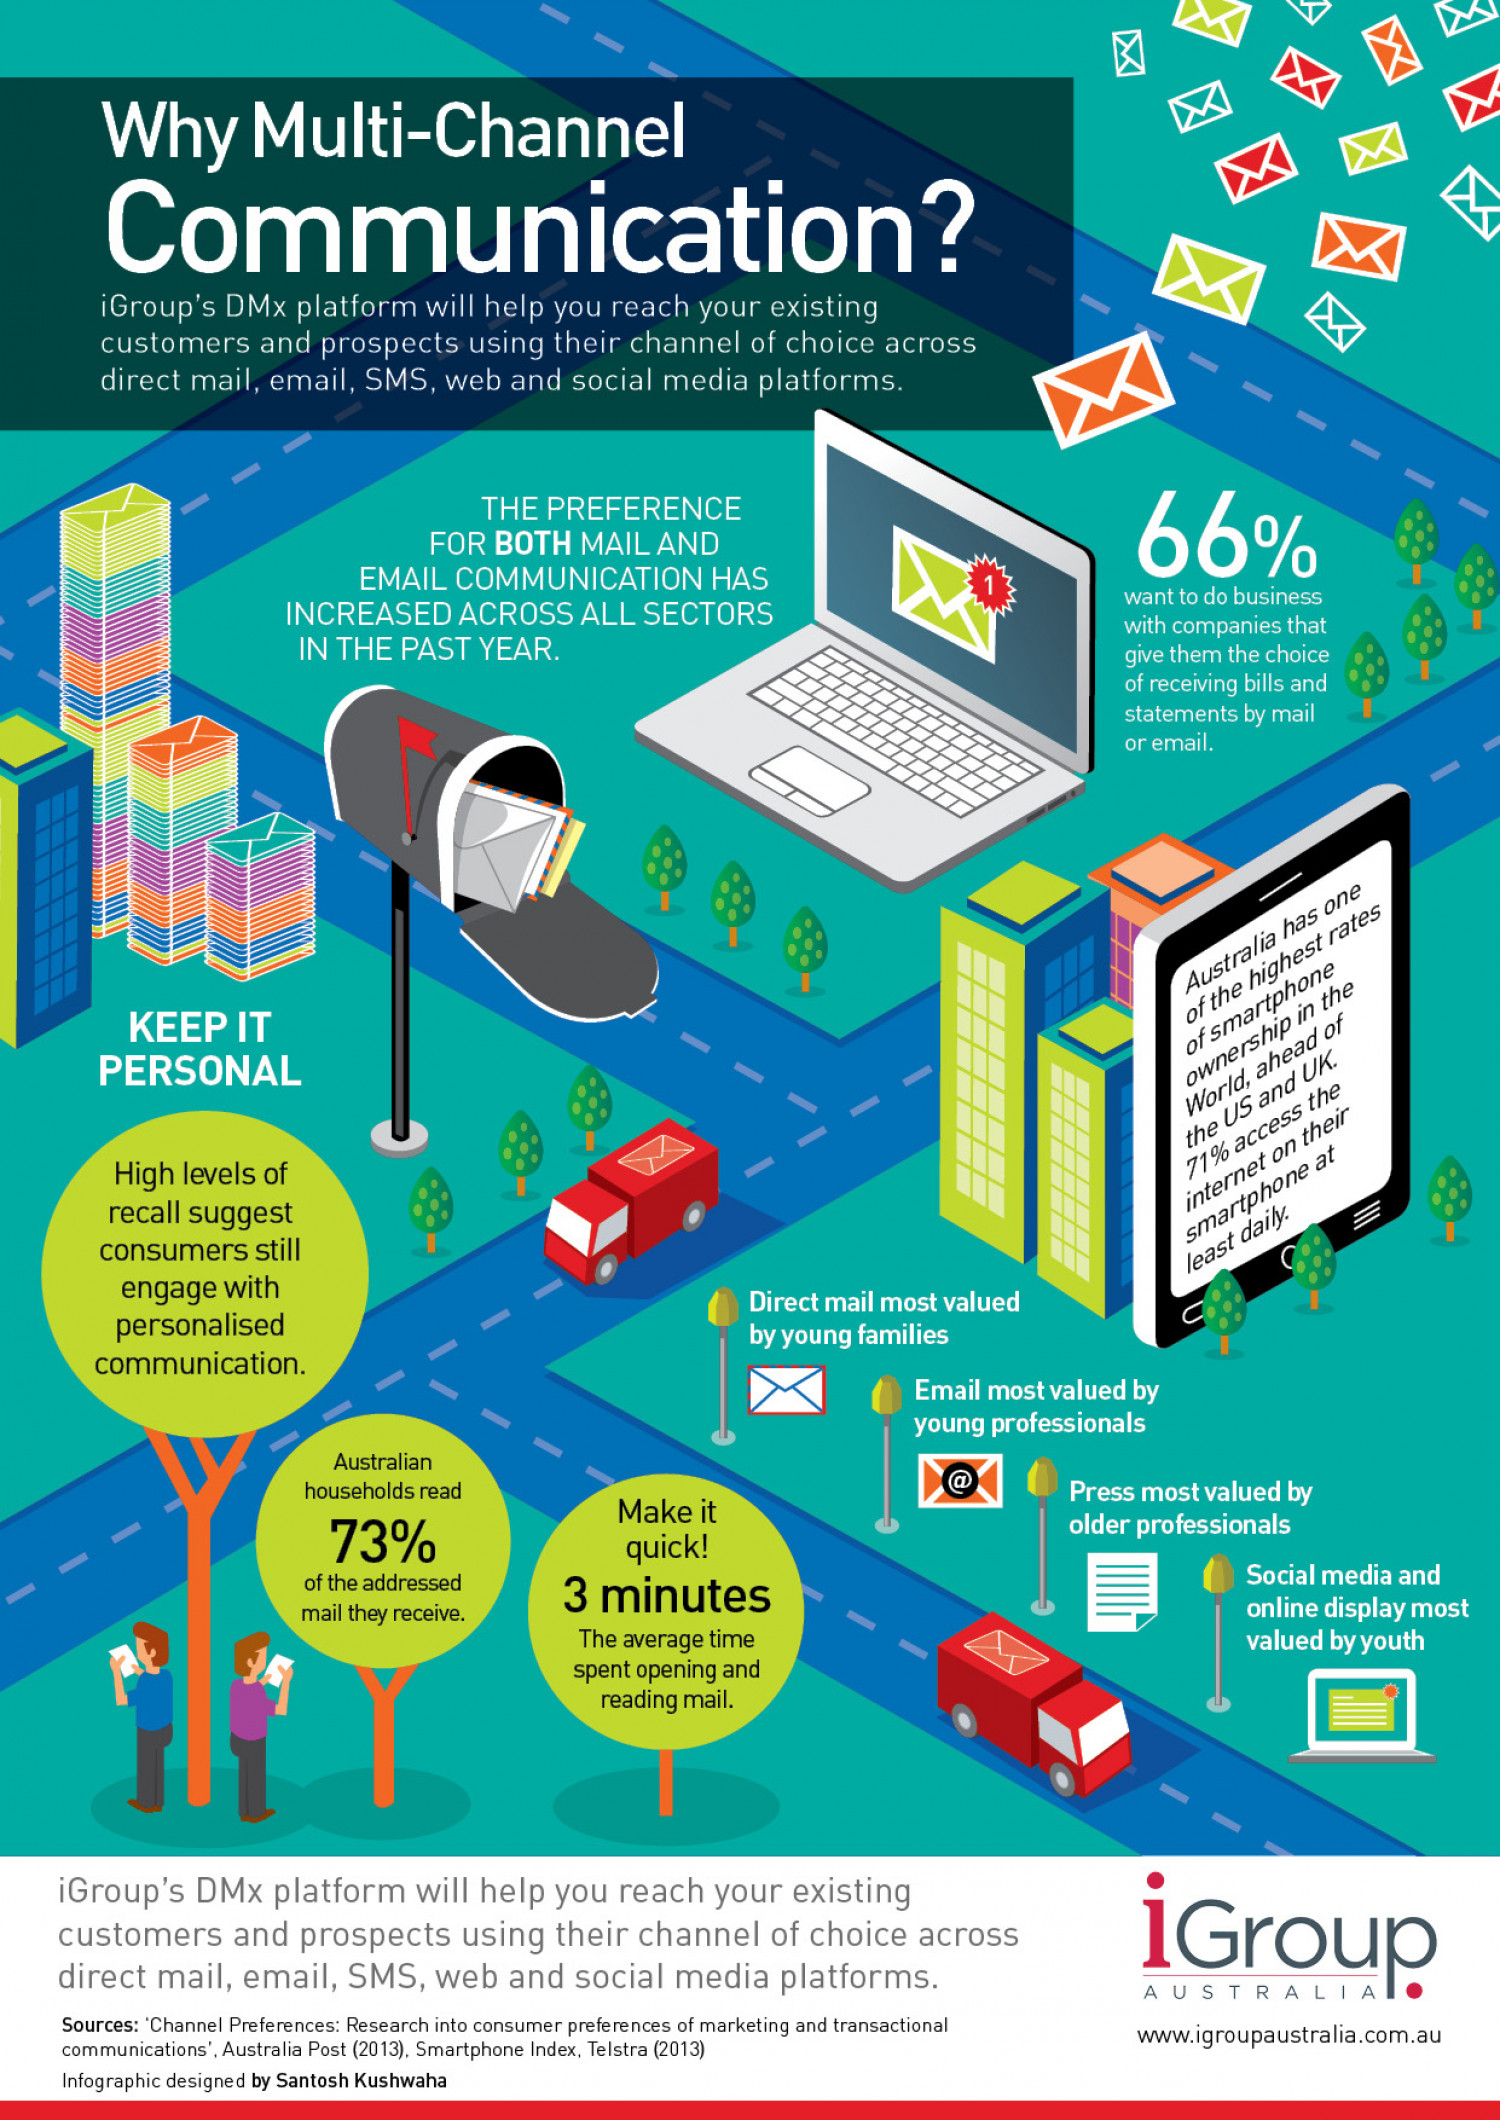 Why Multi-Channel Communication? Infographic